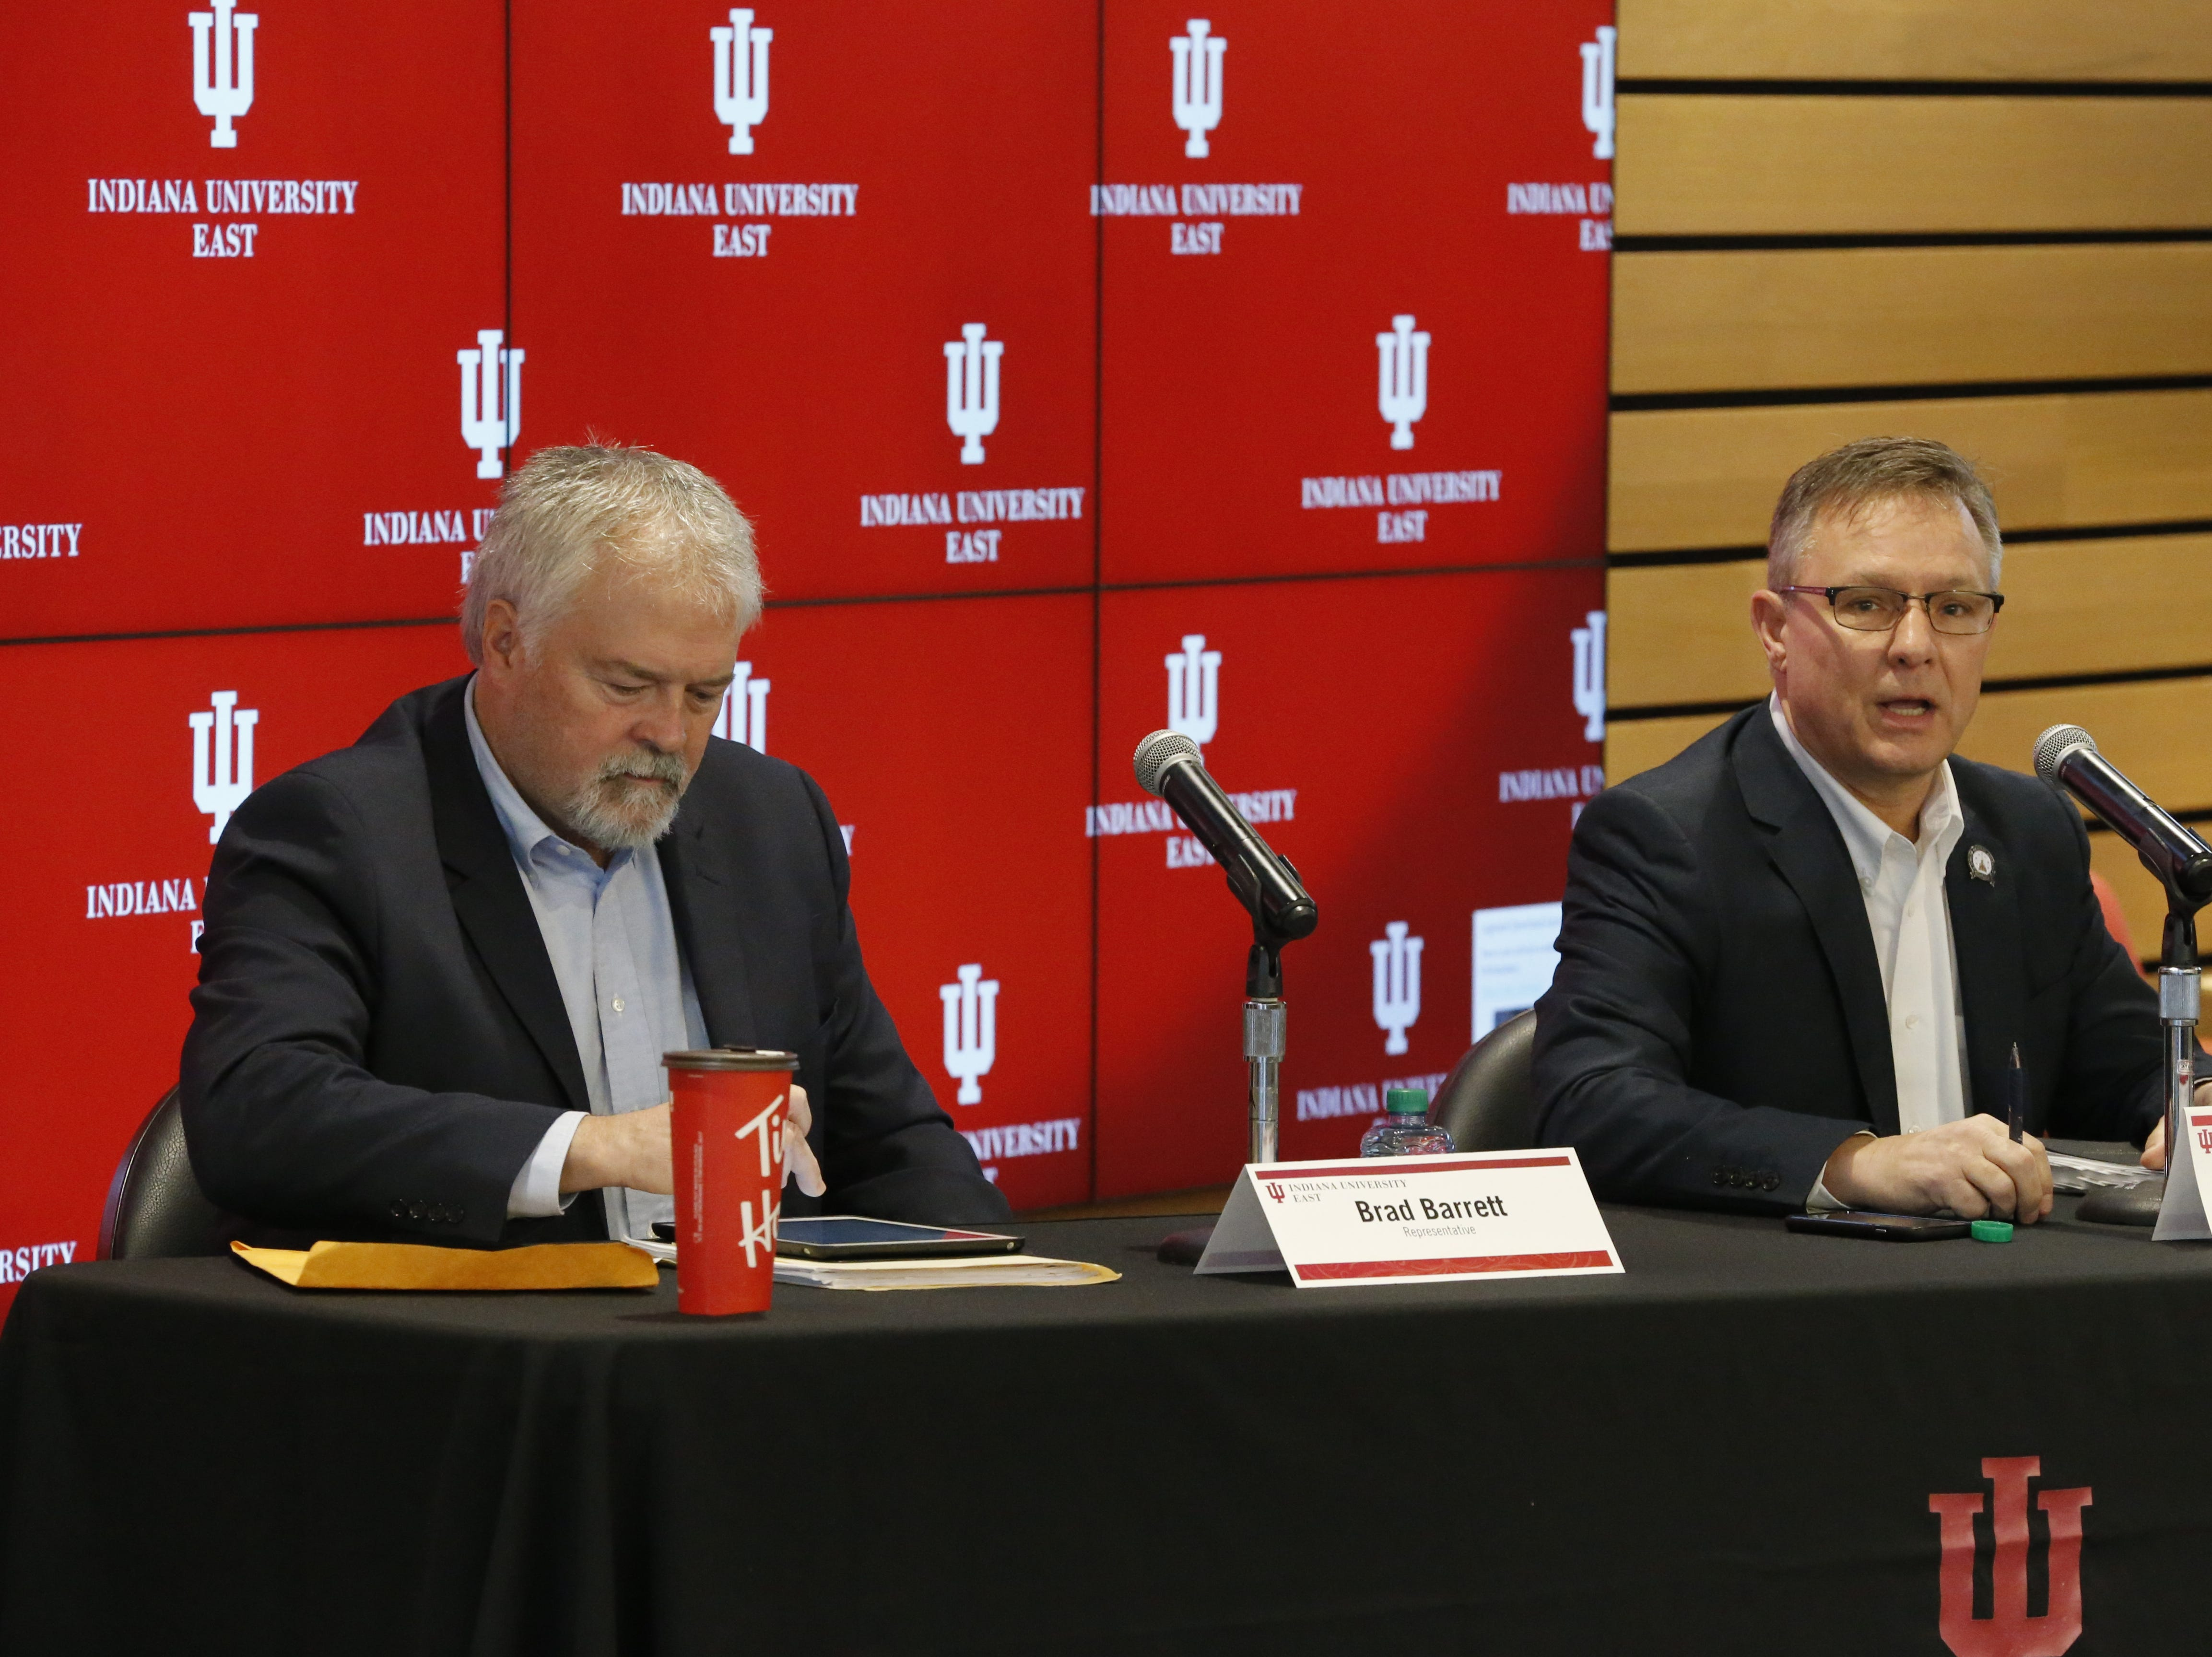 State Sen. Jeff Raatz (right) and State Rep. Brad Barrett were on hand for Friday's Legislative Forum at IU East to give an update on the work being done by the Indiana General Assembly.